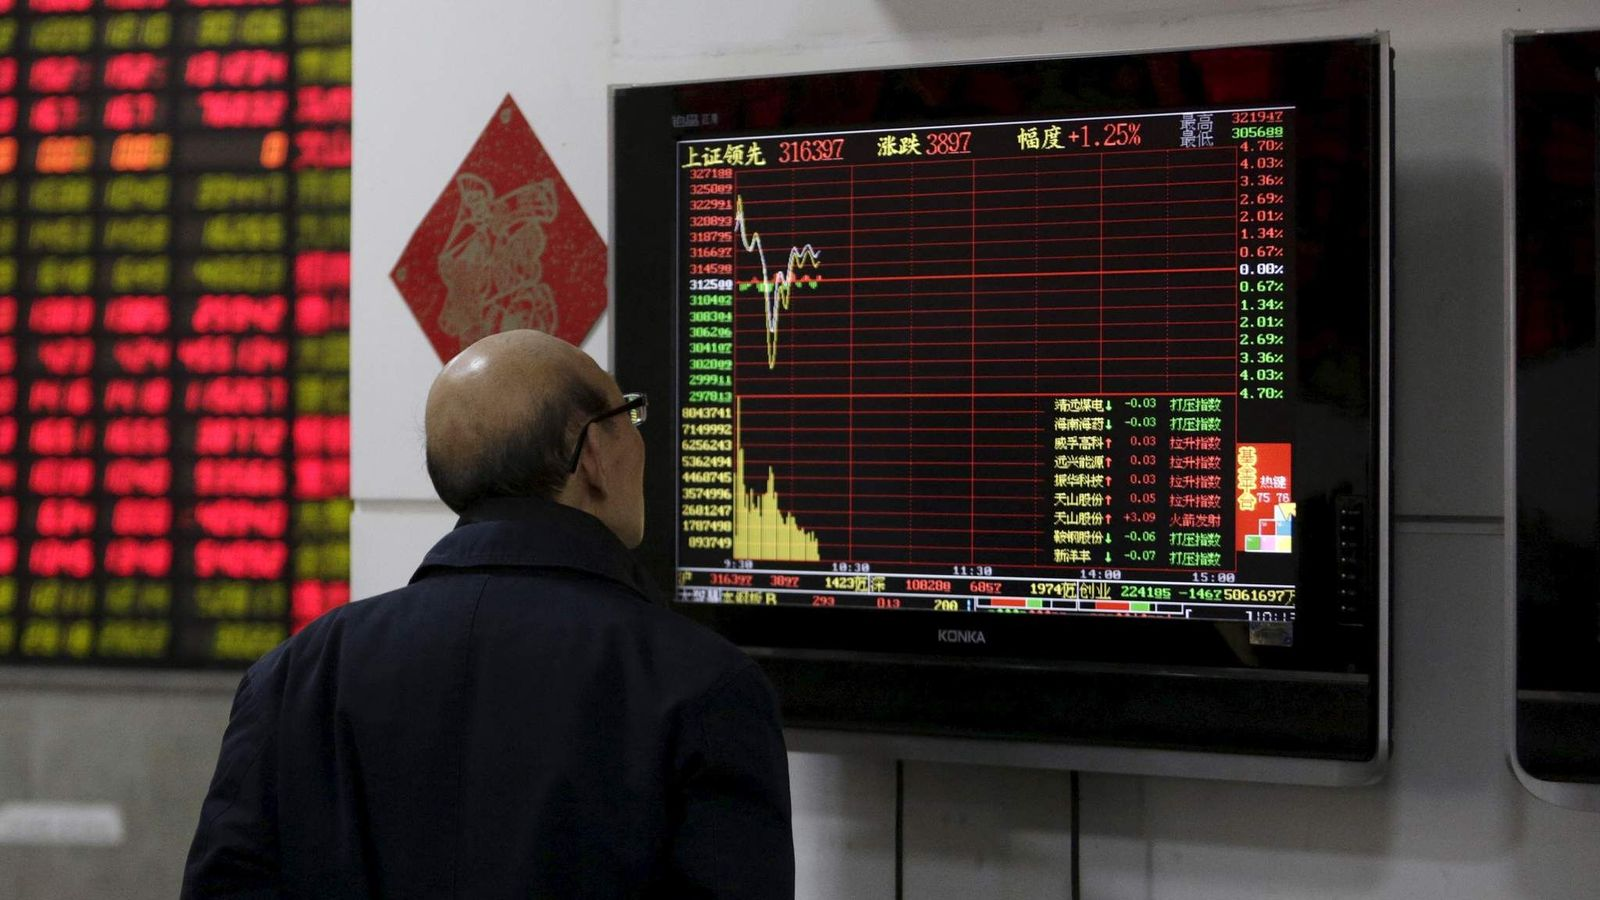 An investor looks at a screen showing stock information at a brokerage house in Shanghai